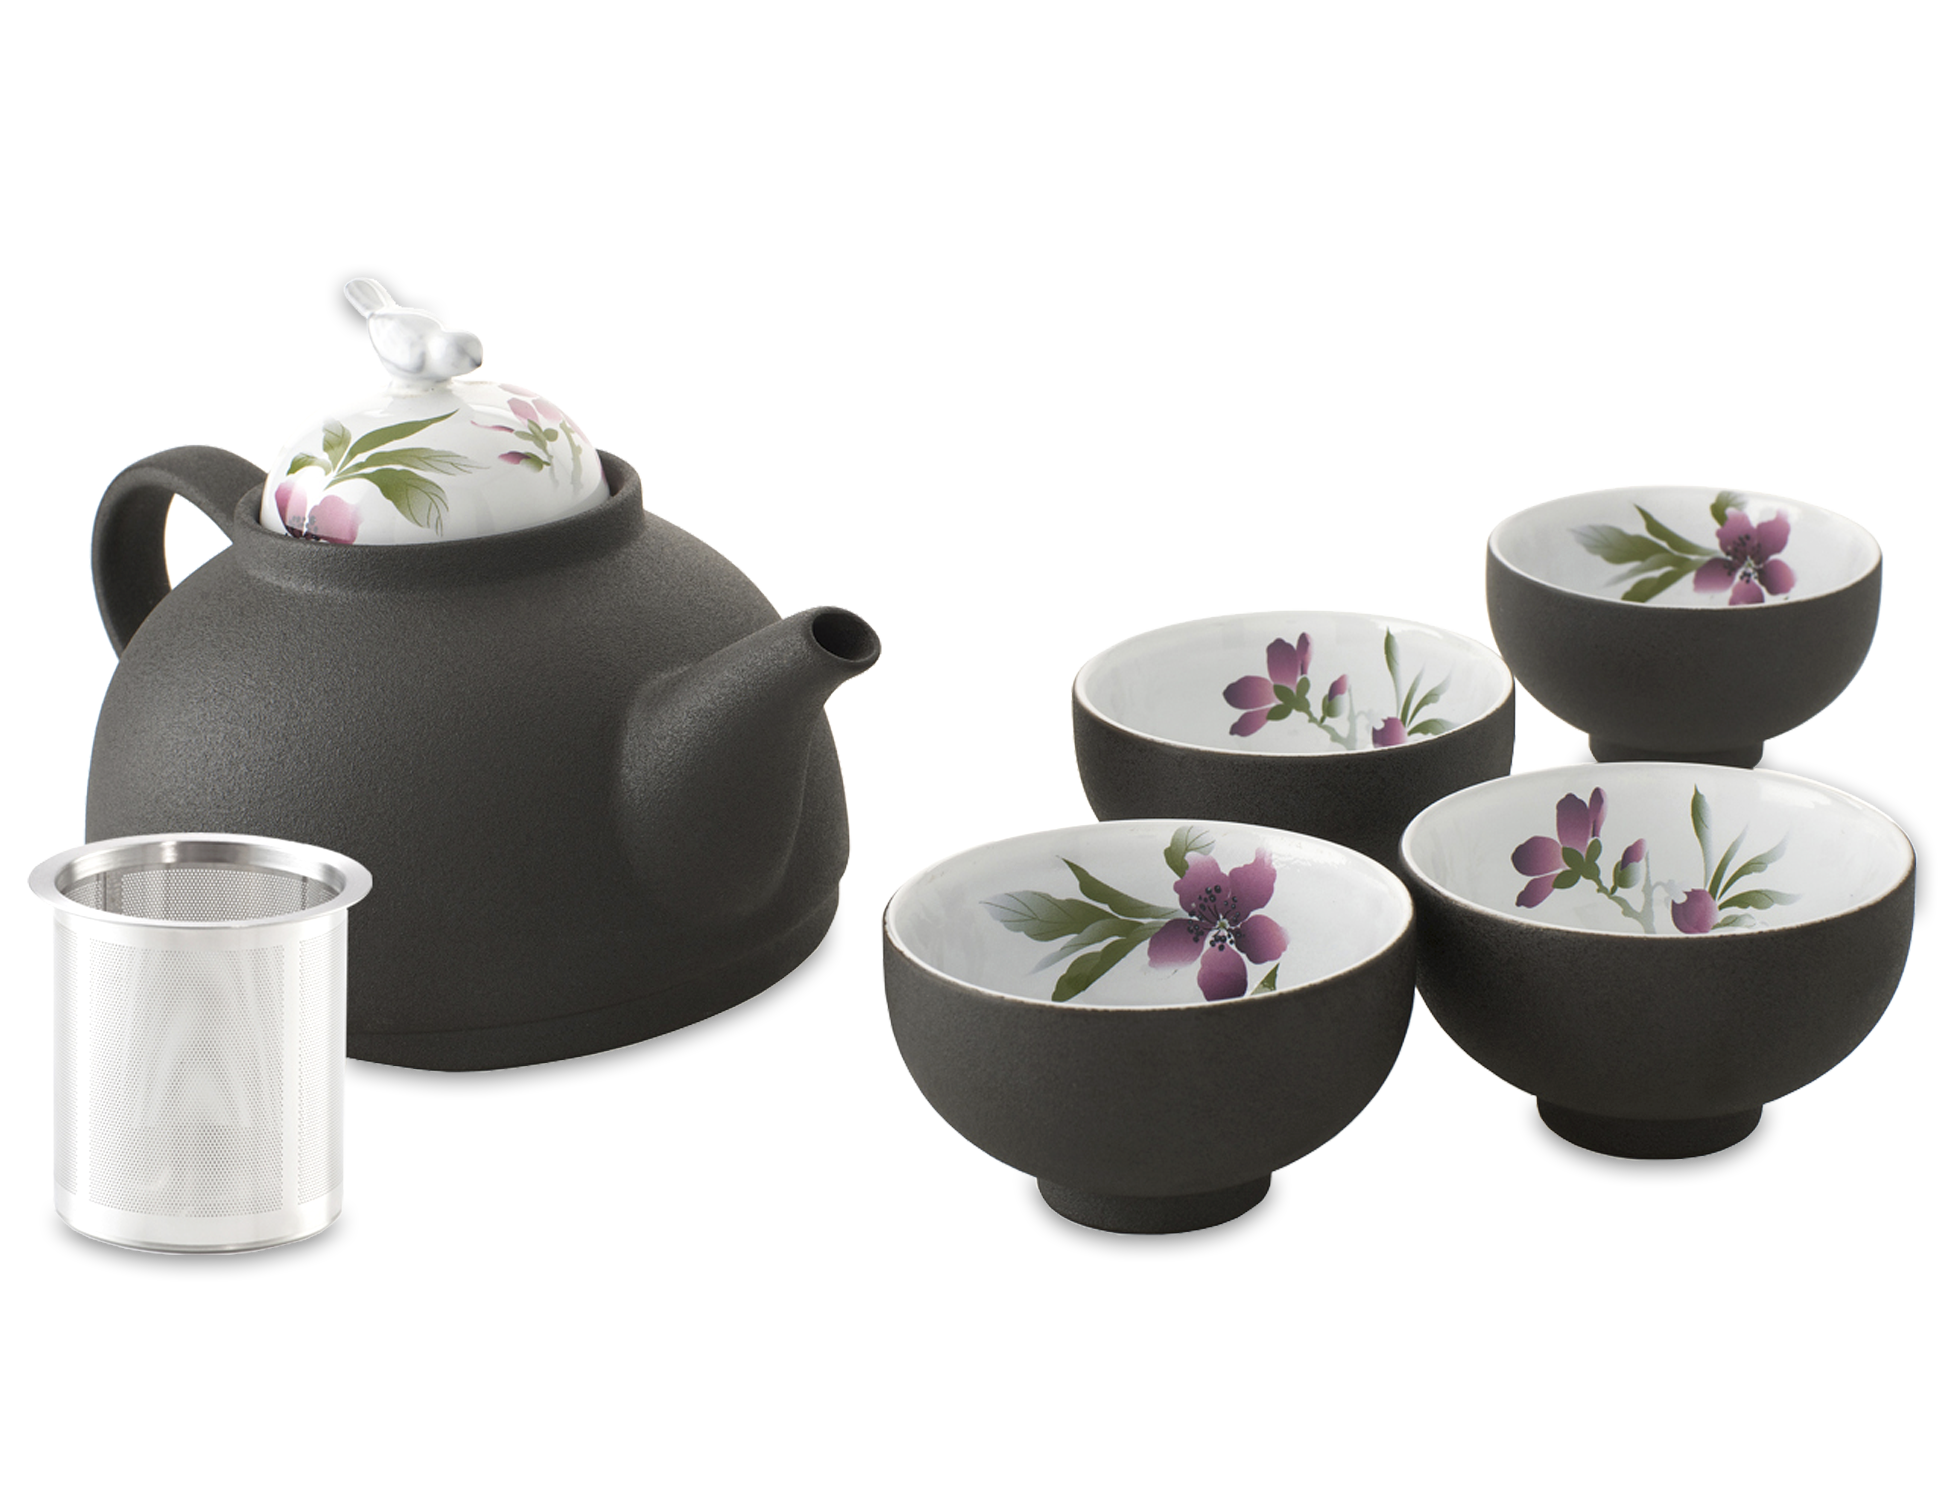 Dark Tea Set Clipart Photos 25835